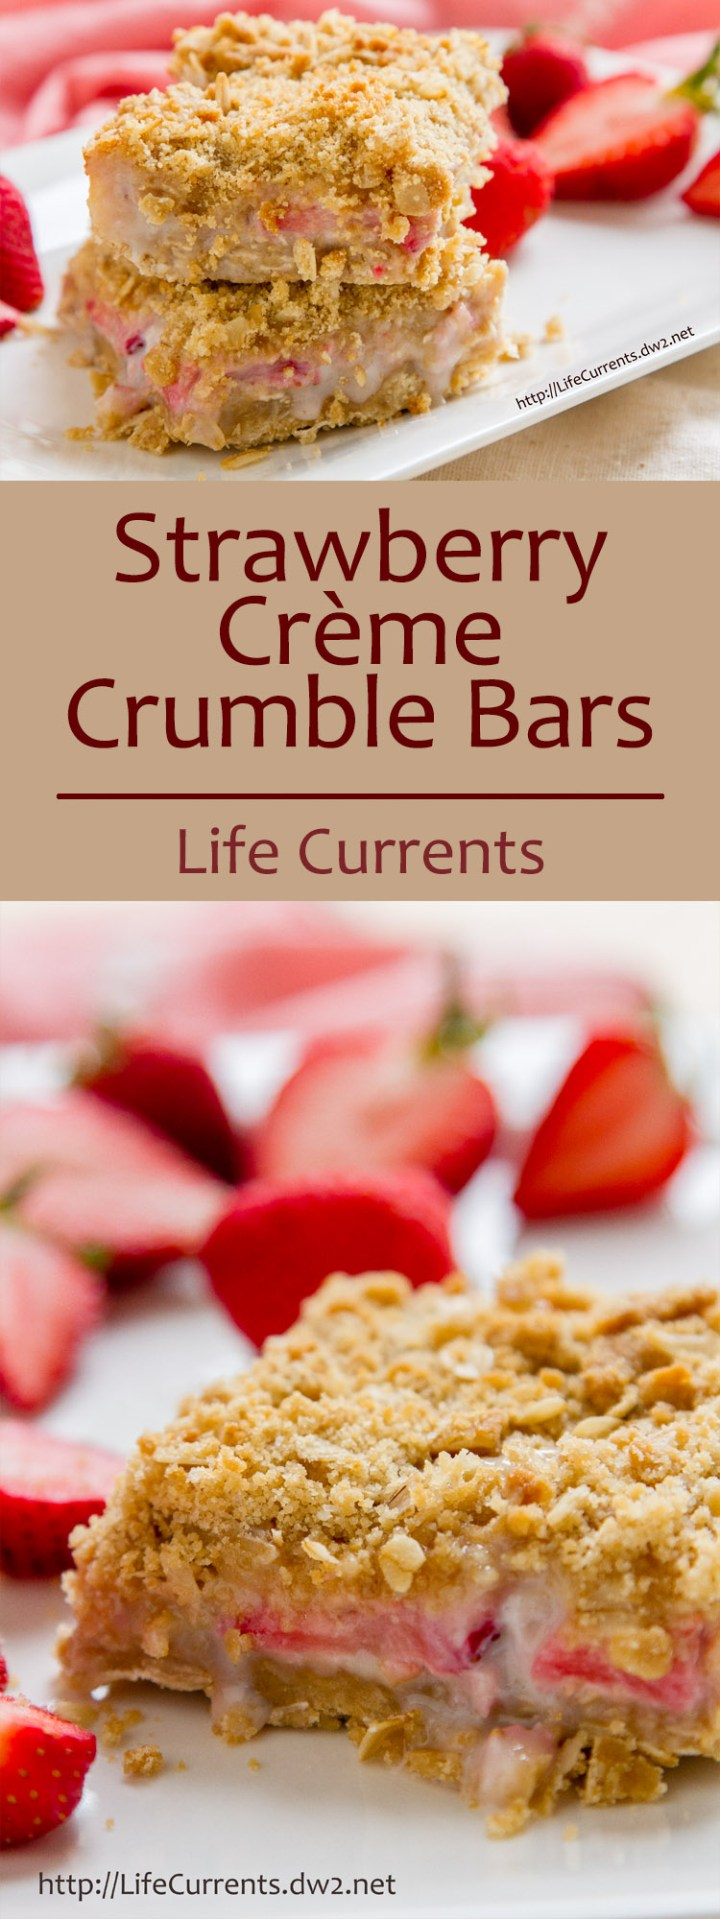 Strawberry Crème Crumble Bars are sweet crumbly dessert bars with an oatmeal cookie crust, and a streusel topping; your whole family will love them! by Life Currents https://lifecurrentsblog.com